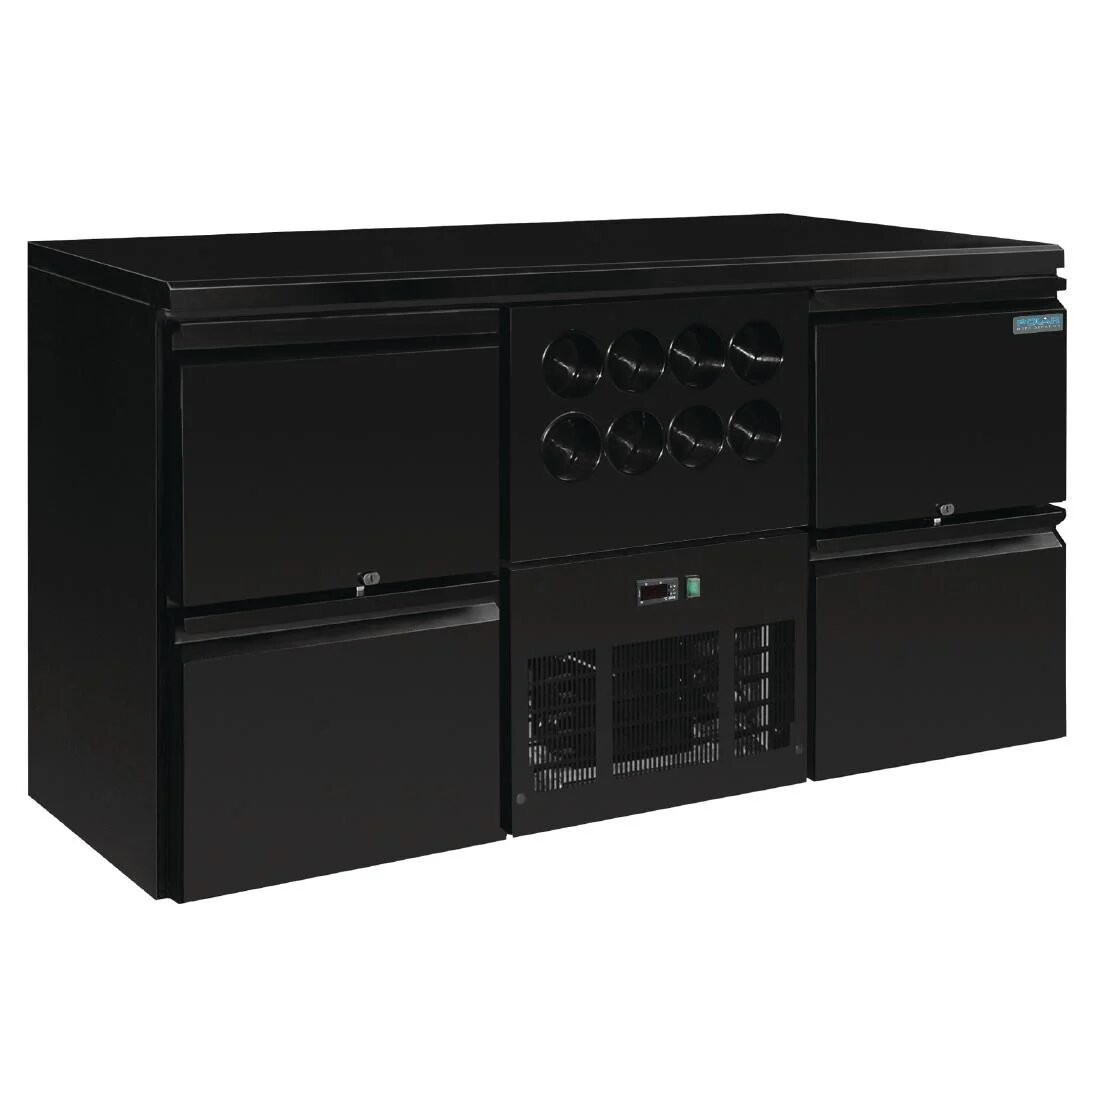 Polar GL457 U-Series Four Drawer Back Bar Counter and Wine Fridge